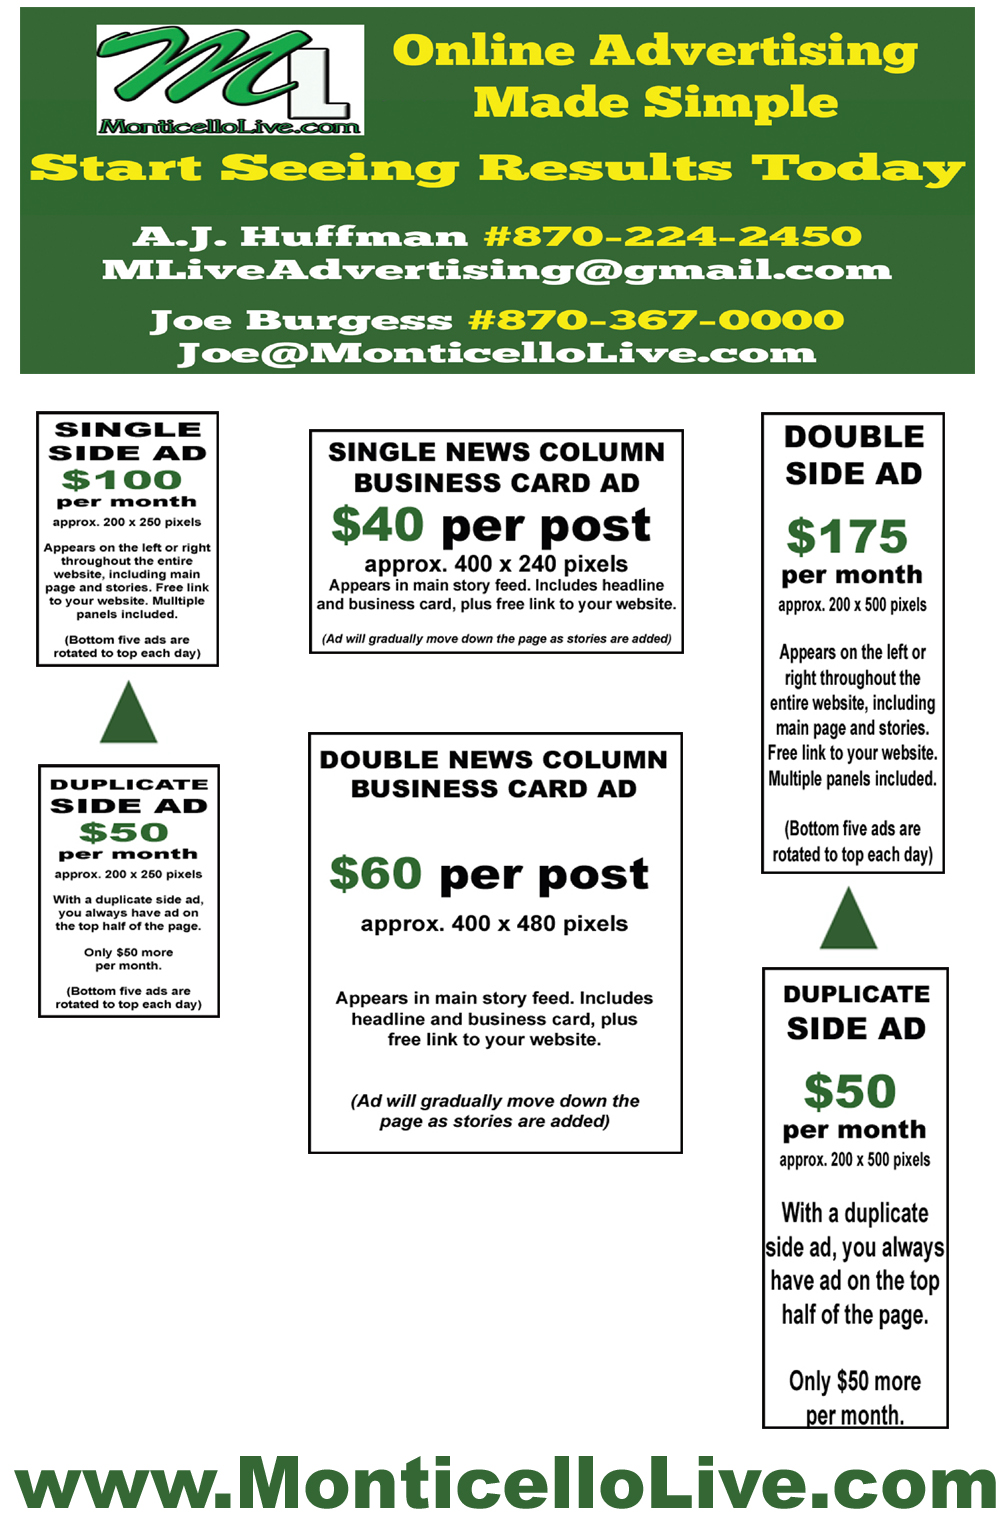 AdvertisingPagePrintOut copy